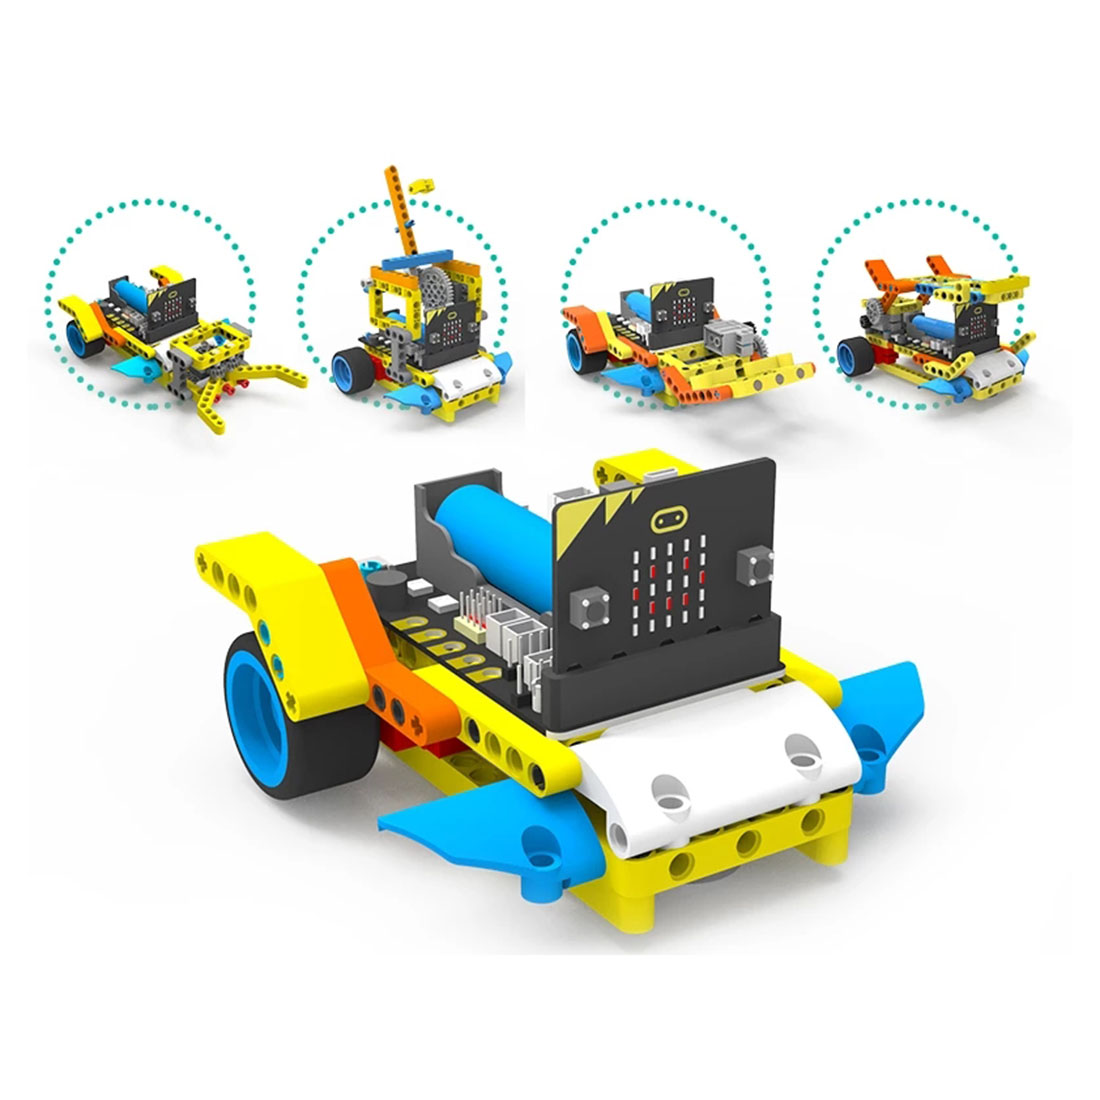 Program Intelligent Robot Building Block Car Kit Various Shape Steam Programming Education Car For Micro:bit(Not Micro:bit Board